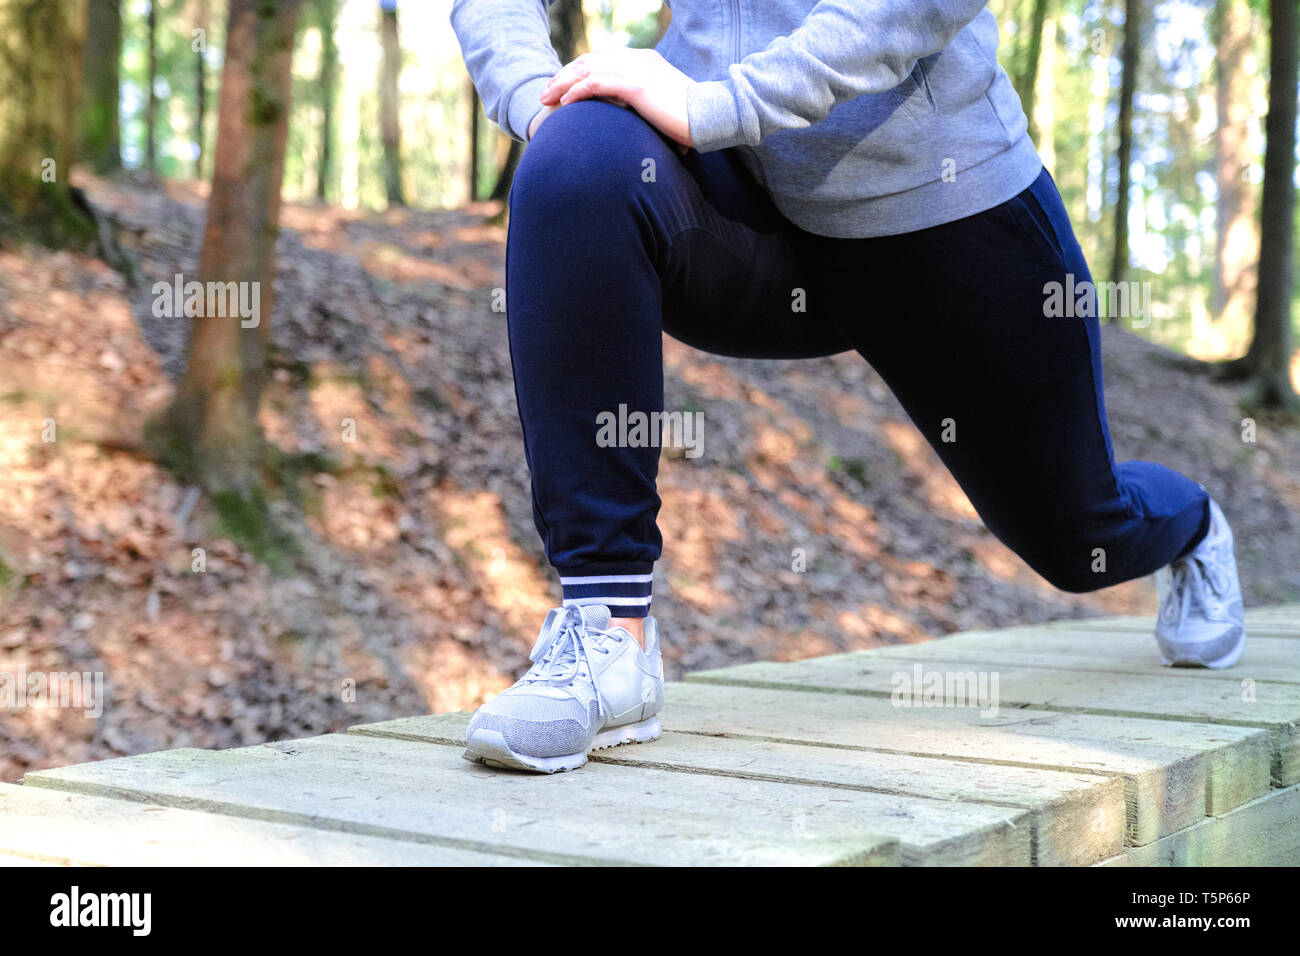 Sports injury. Woman with pain in knee while jogging Stock Photo